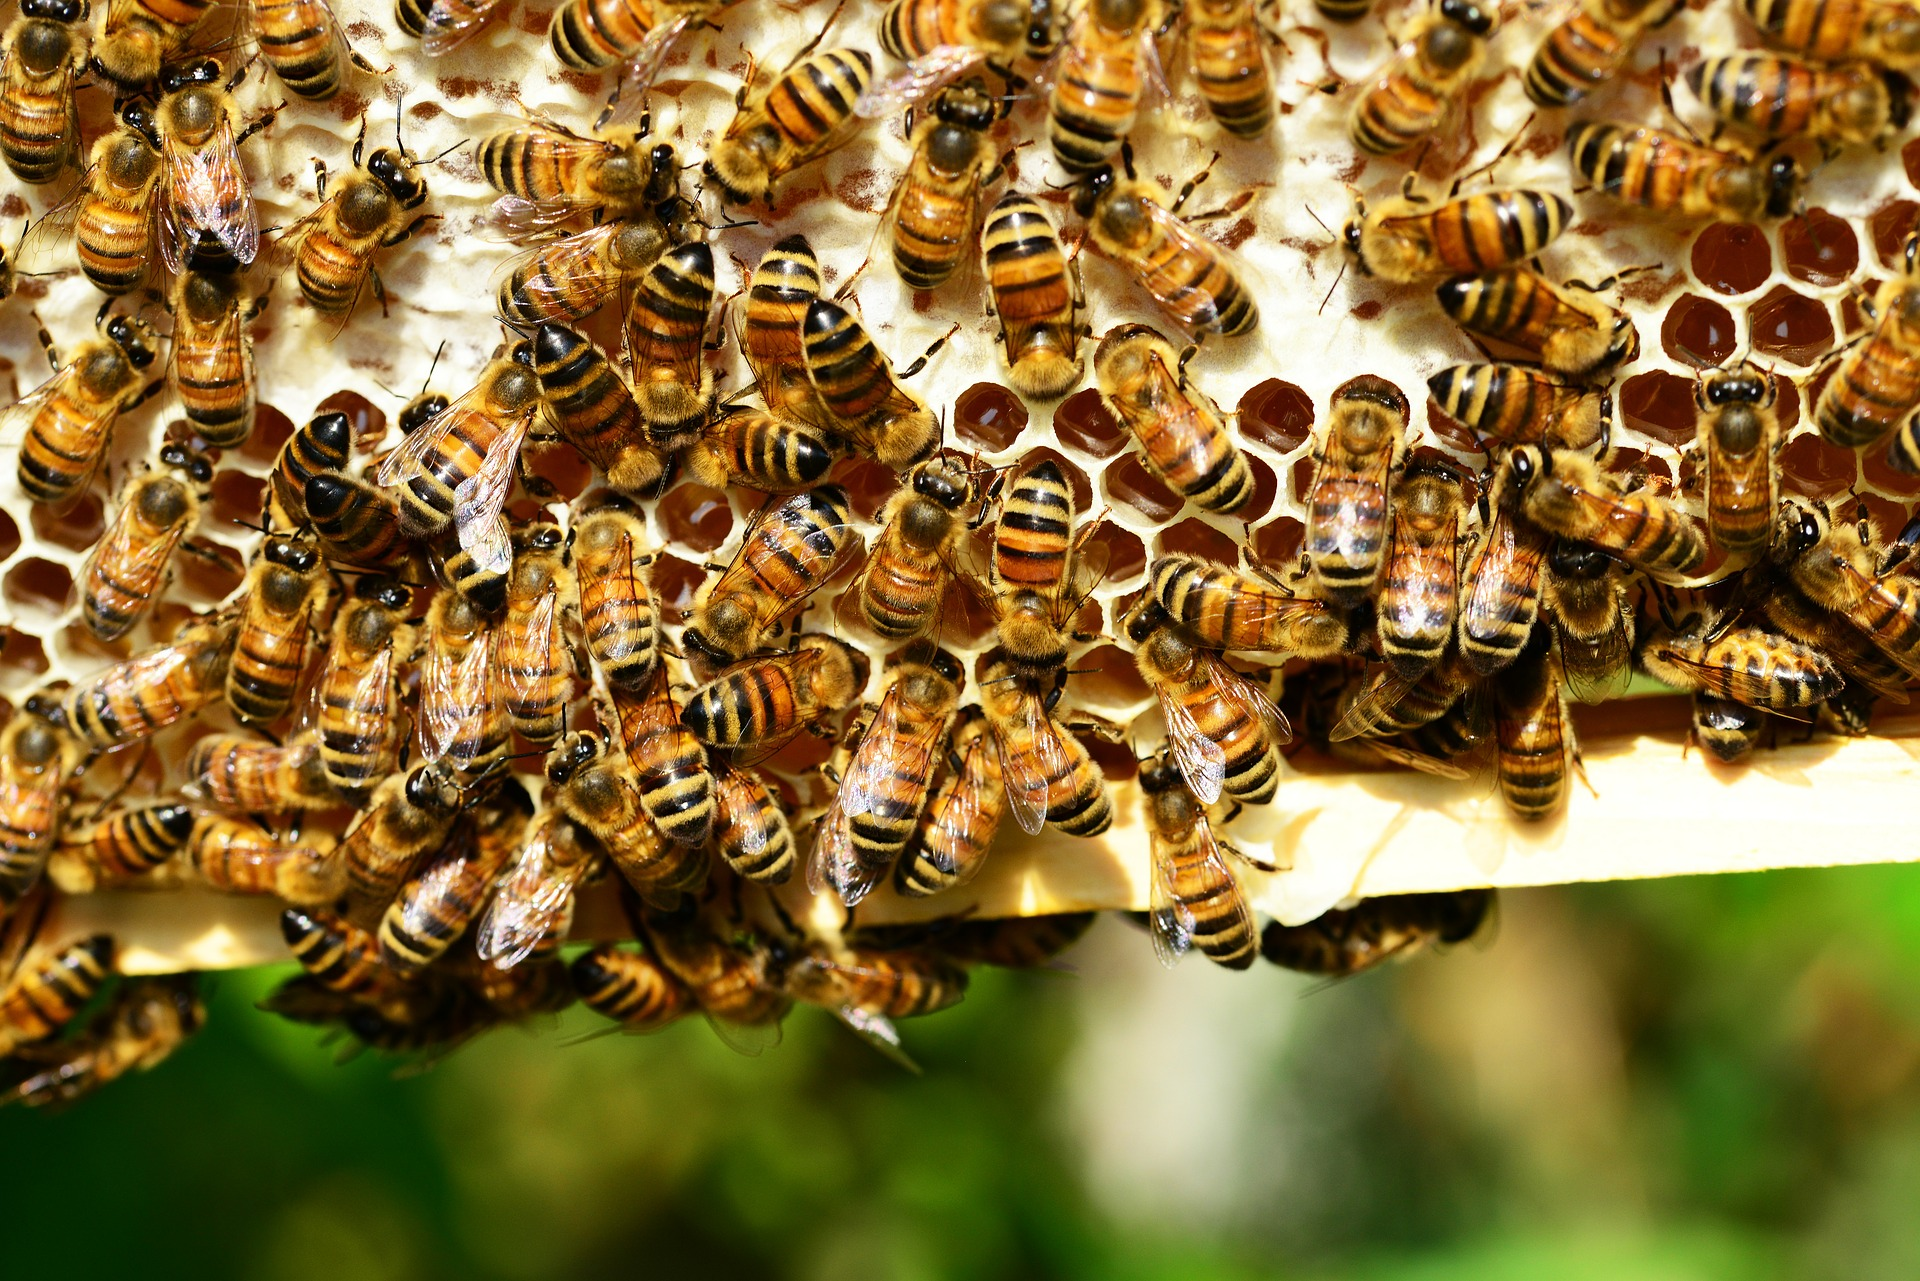 DNA sequencing could create superbees capable of withstanding the parasites and pathogens that are decimating their populations across the globe.